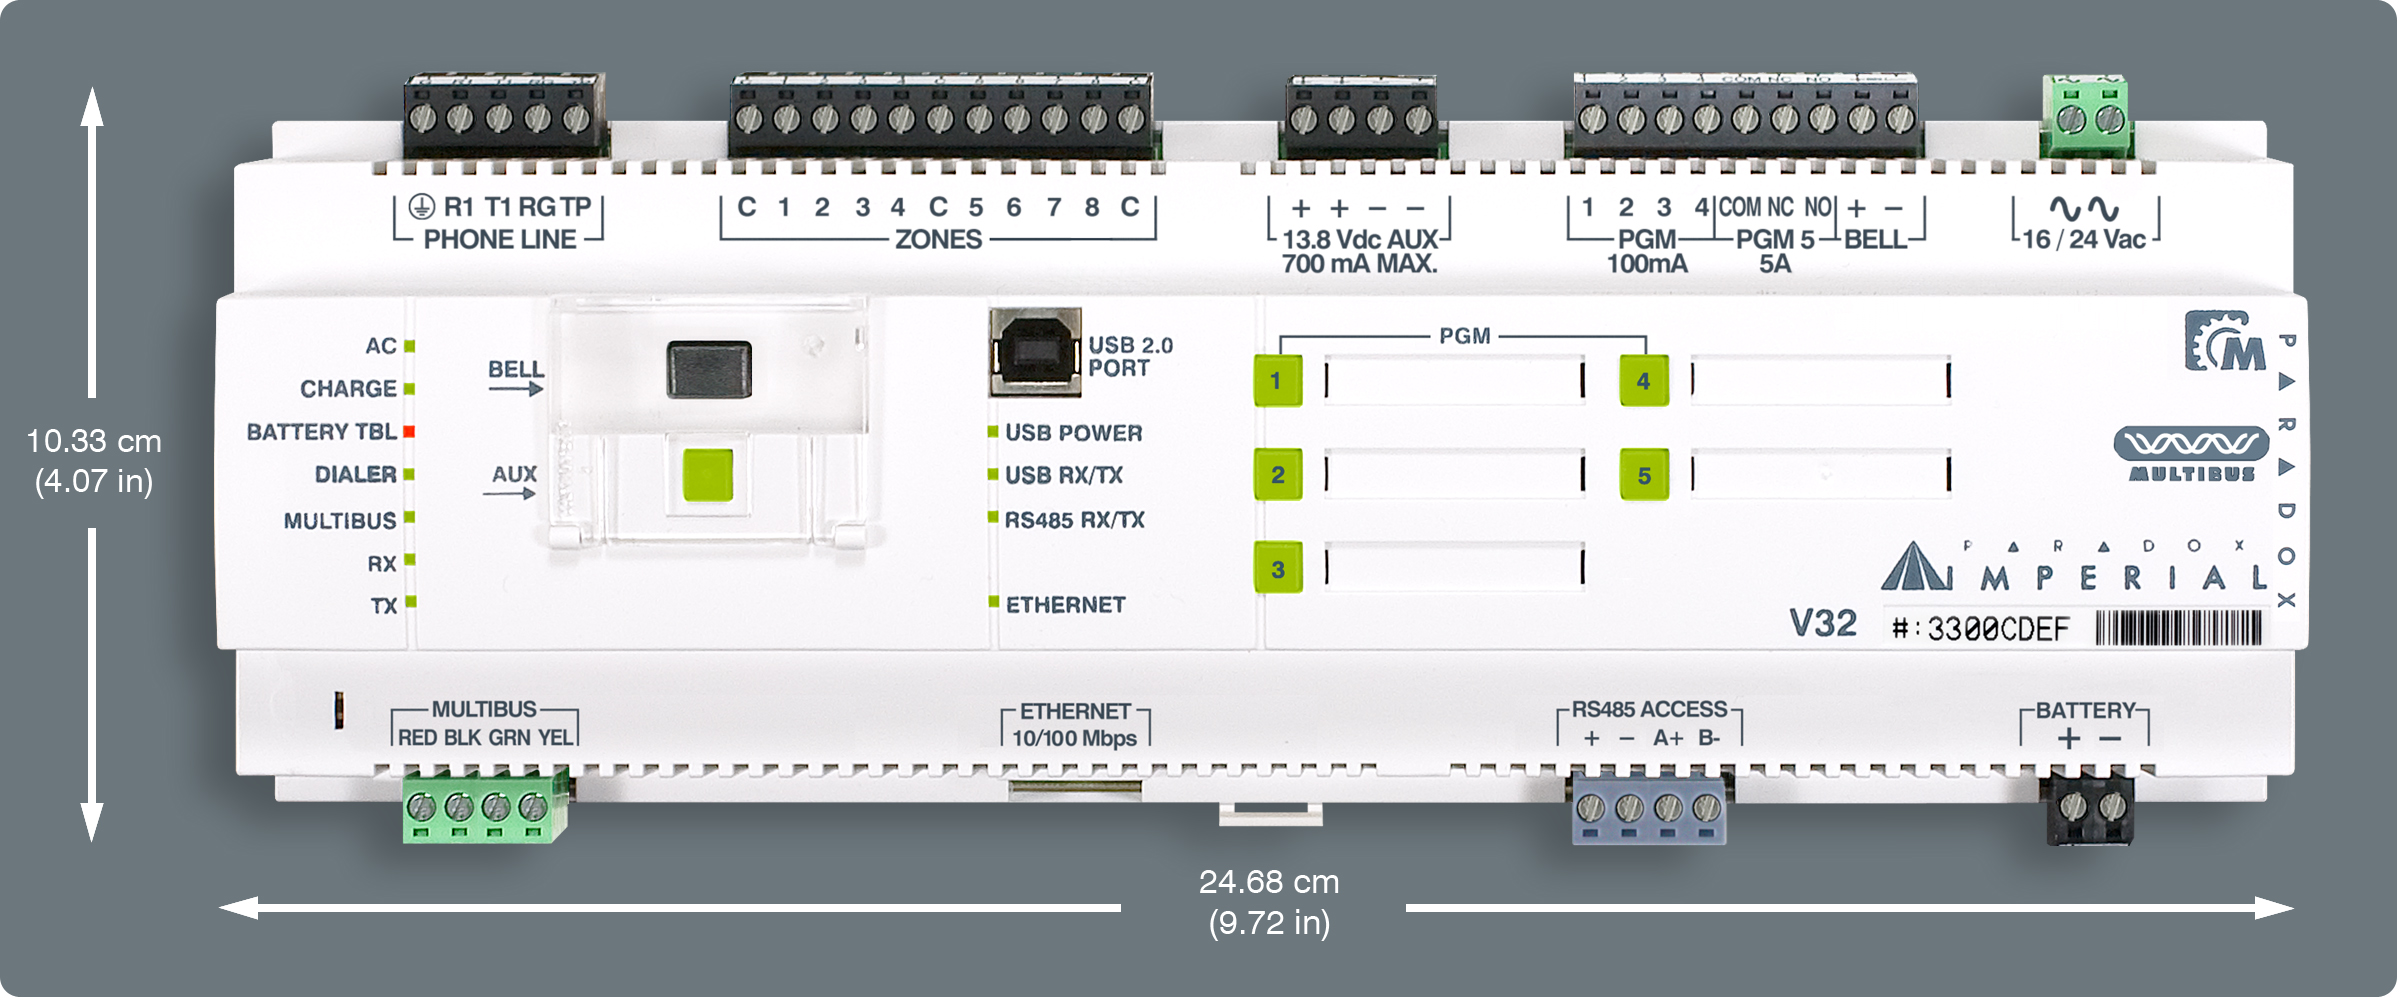 Isonas Opens Up Access Dsx Control Wiring Diagram Here Is A Look At Their Main Controller Component